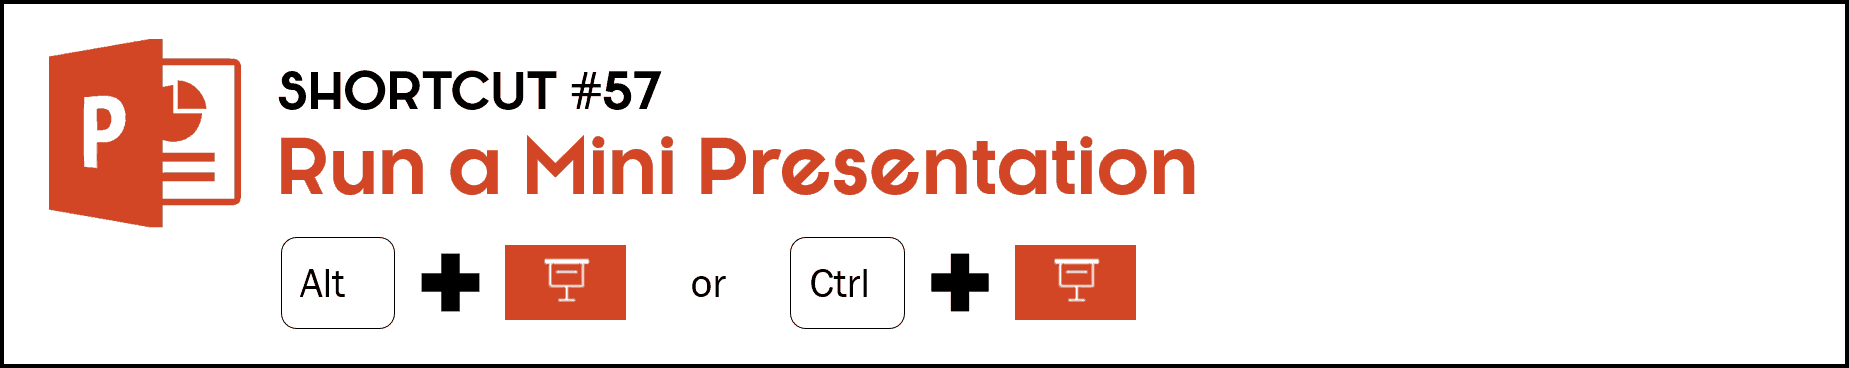 To run a mini view of your slide show, hold the Alt key and click the Slide Show icon at the bottom of your PowerPoint workspace